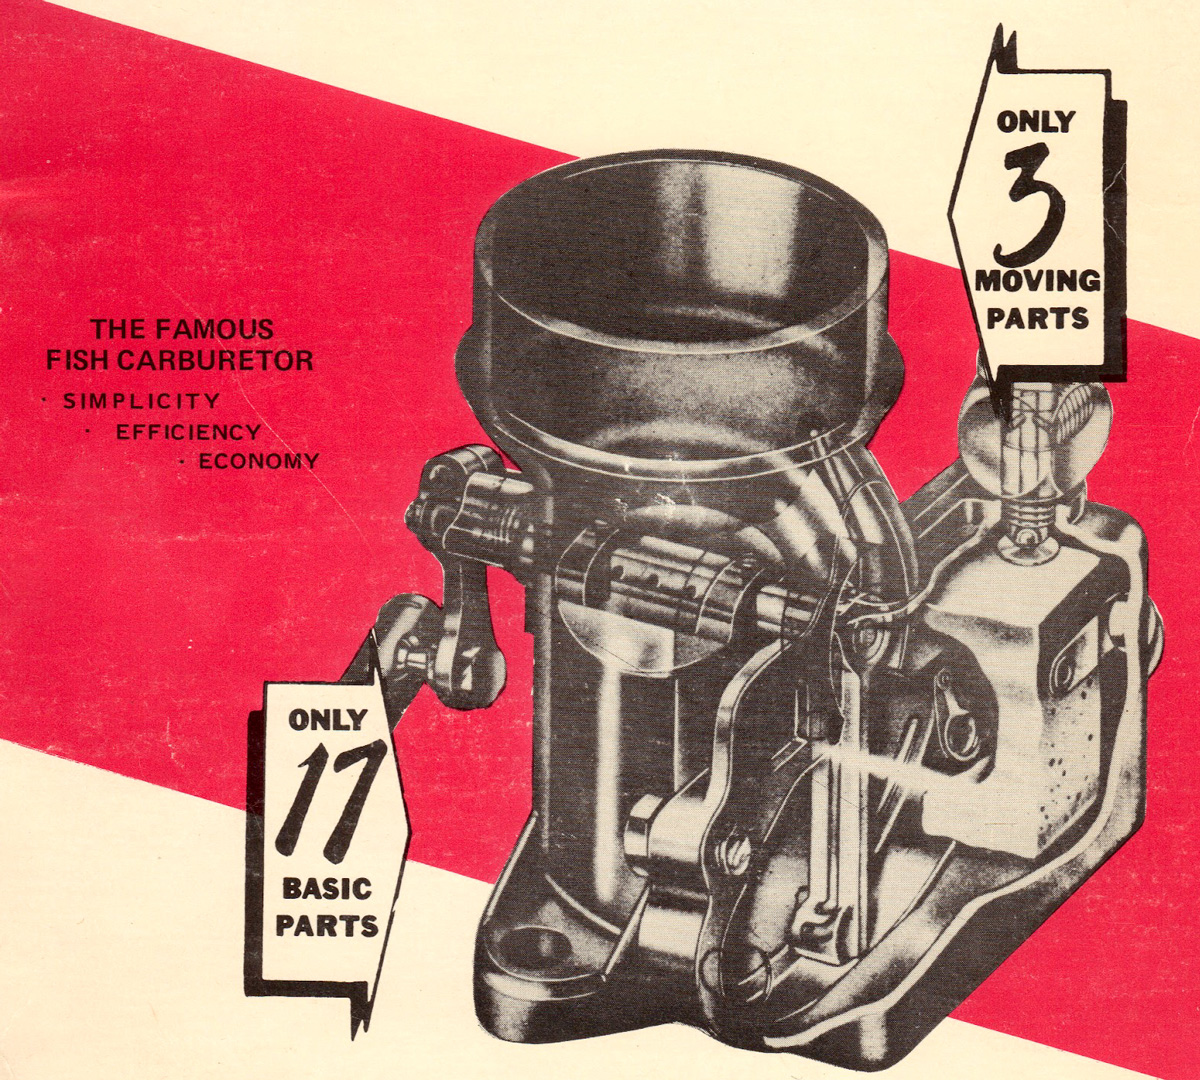 Fish carburetor